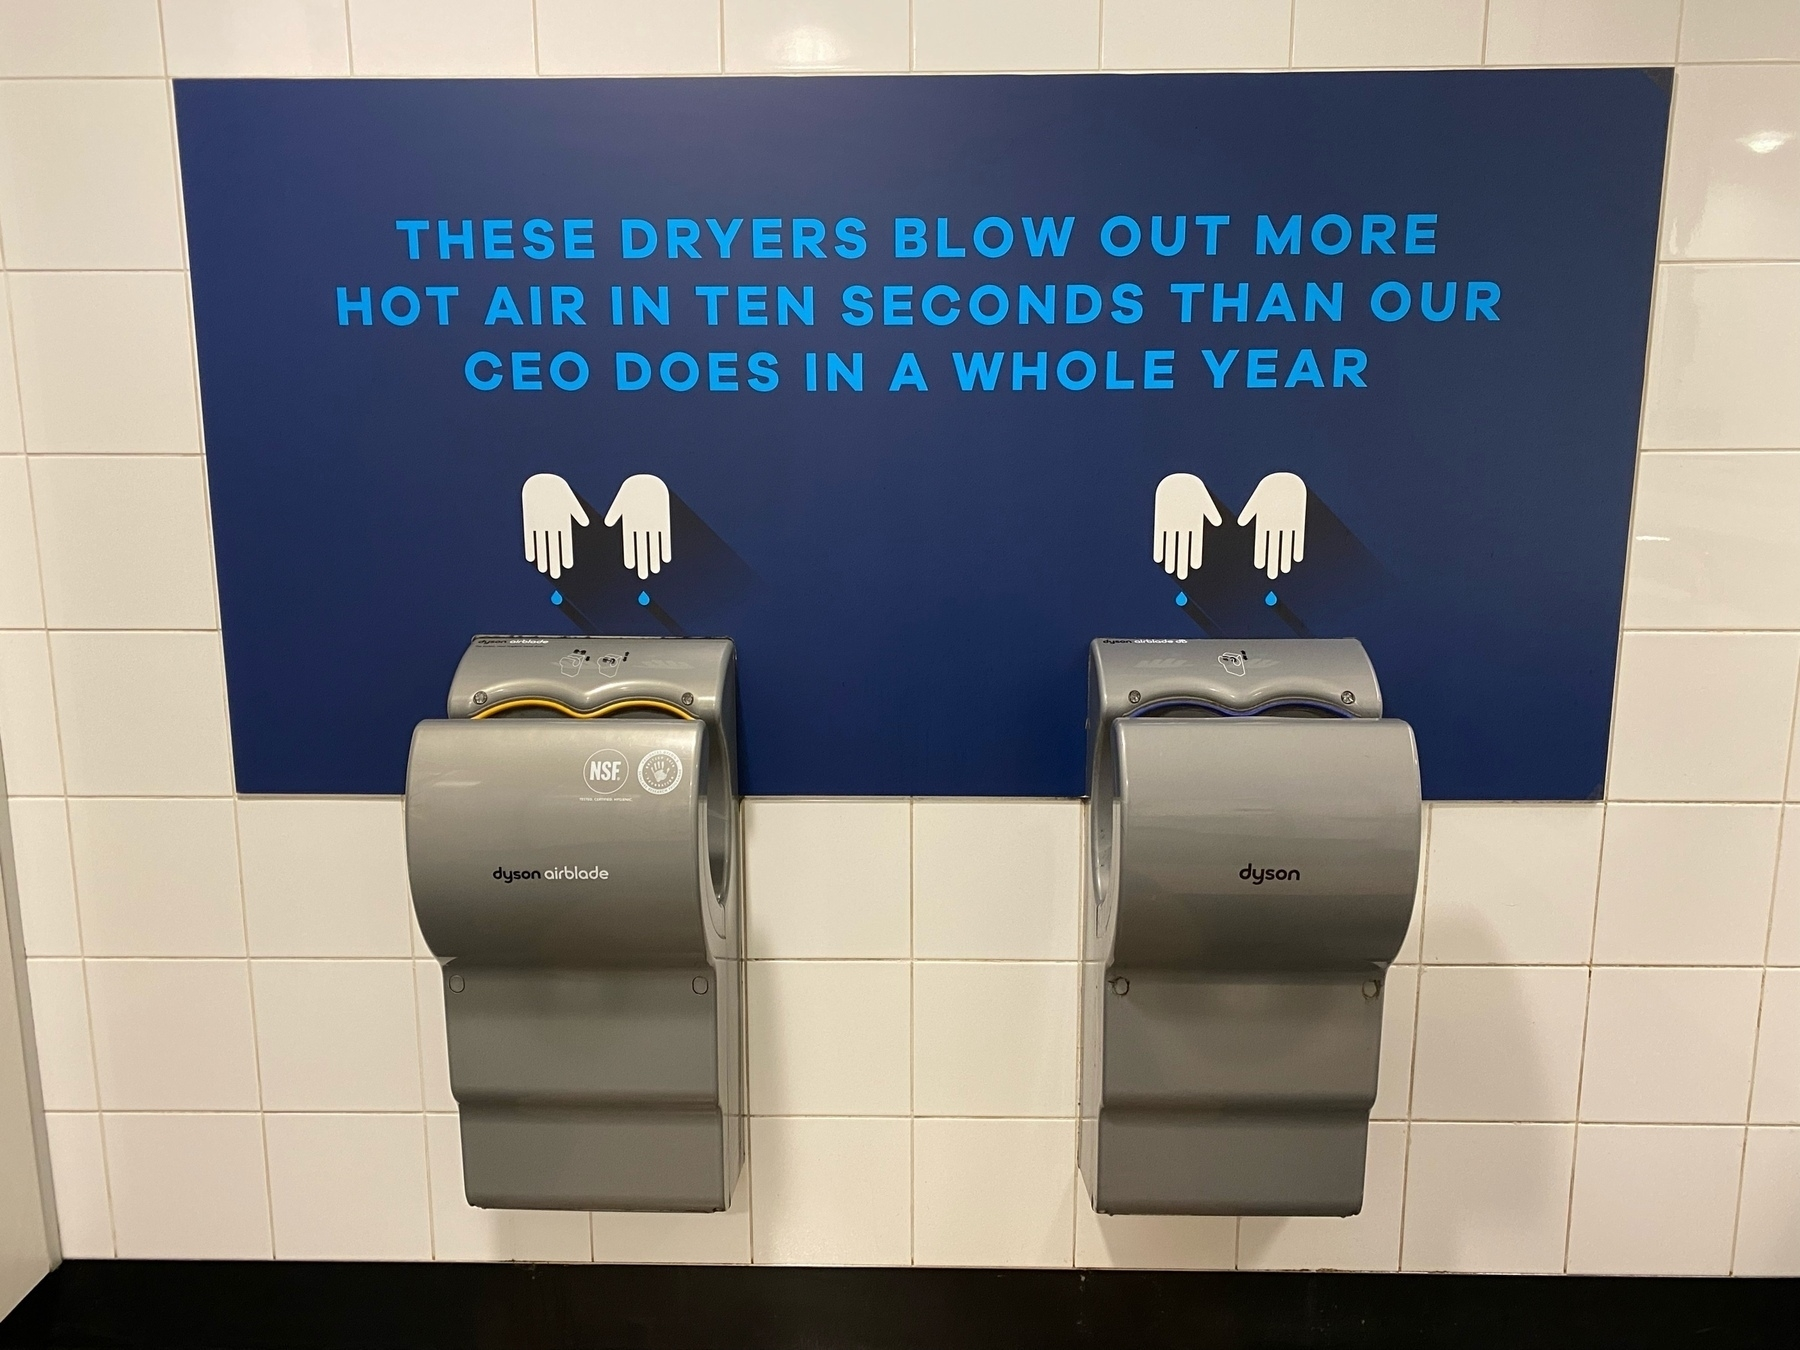 Hot air hand dryers with sign that says These dryers blow out more hot air in 10 seconds than our CEO does in a year.